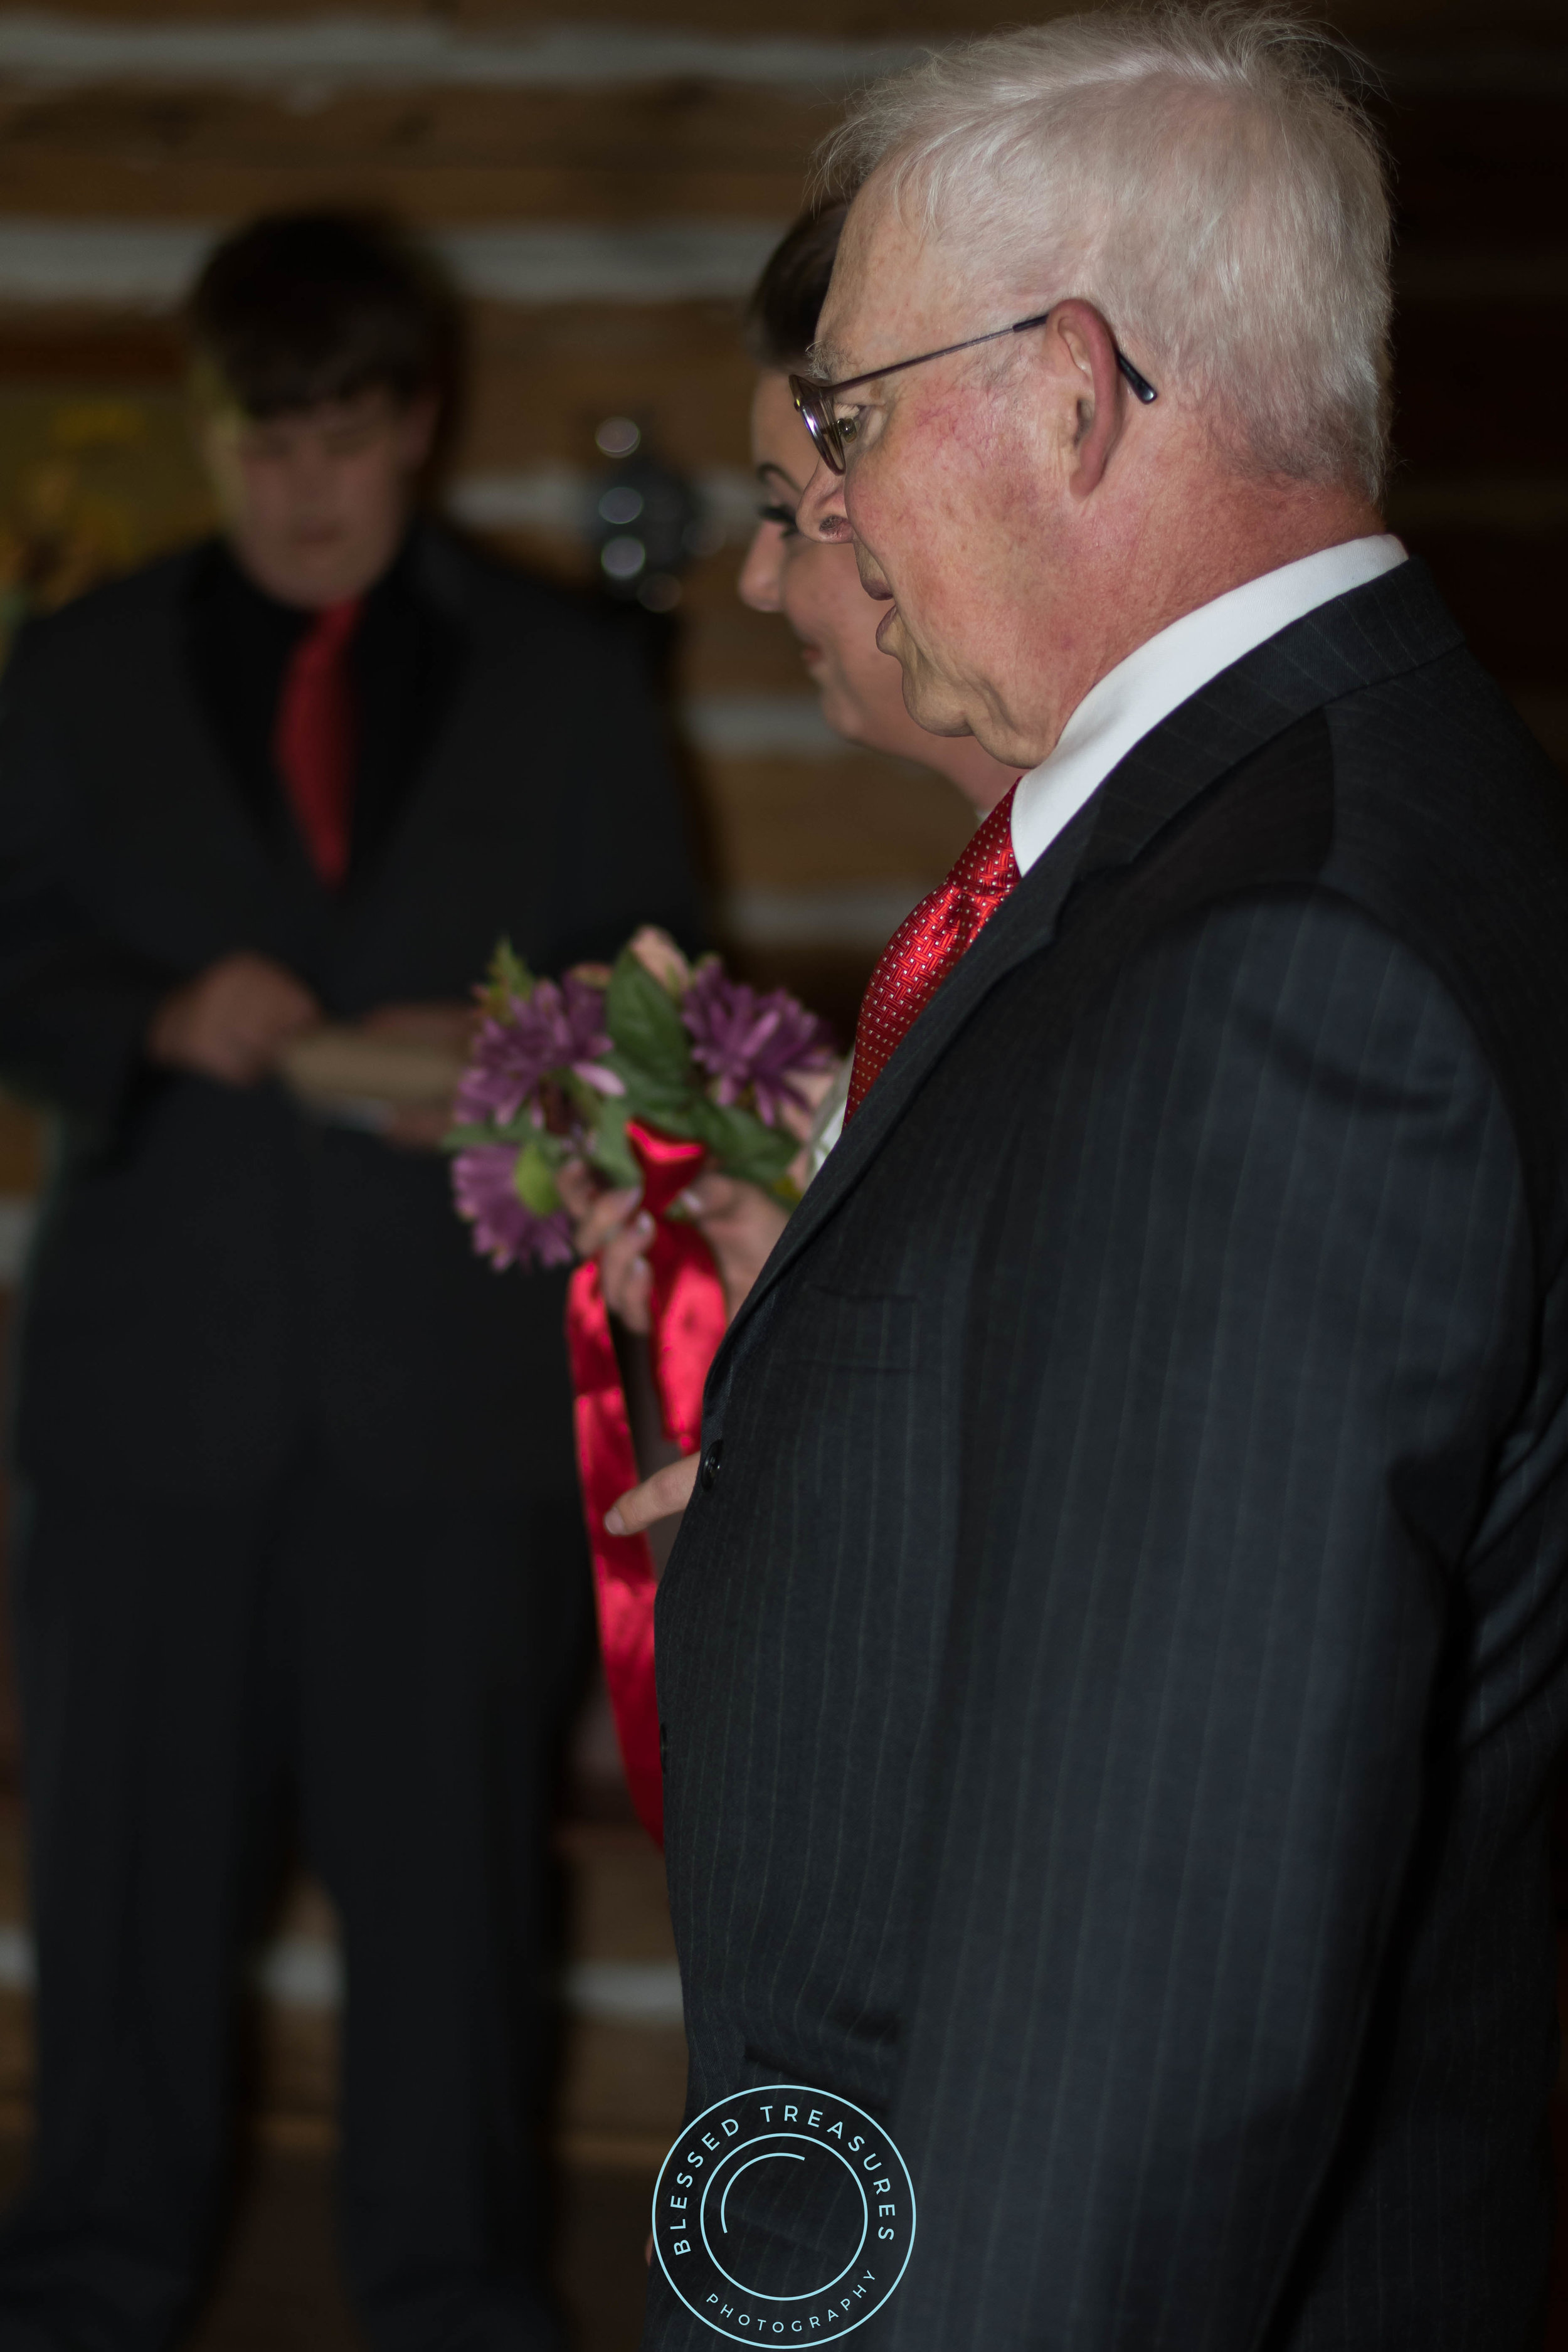 Mansfield township pioneer church crystal falls michigan bridal entrance with father